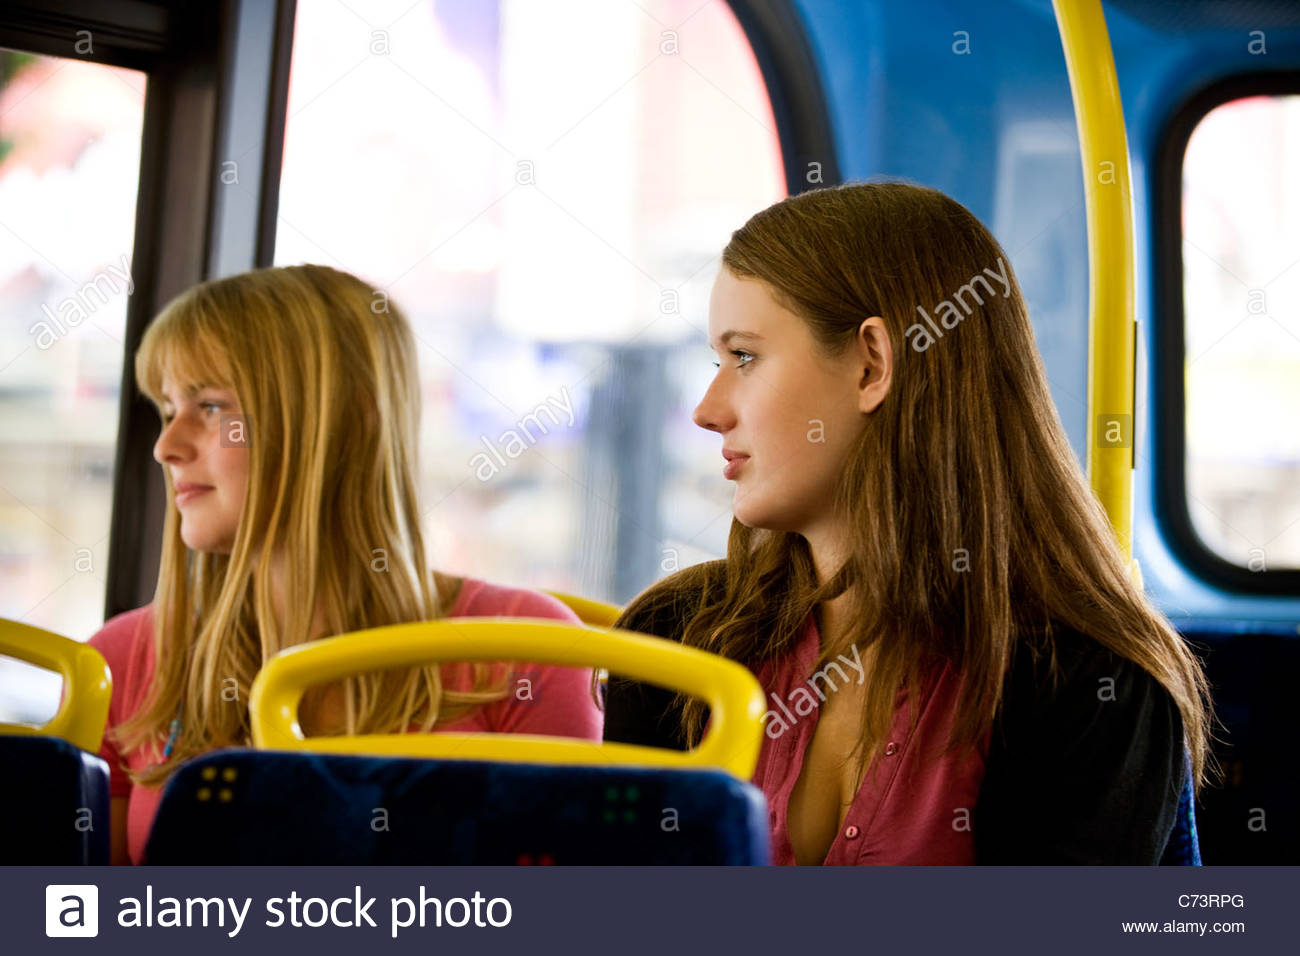 Two teenage girls sitting on a bus, looking out of the window - Stock Image